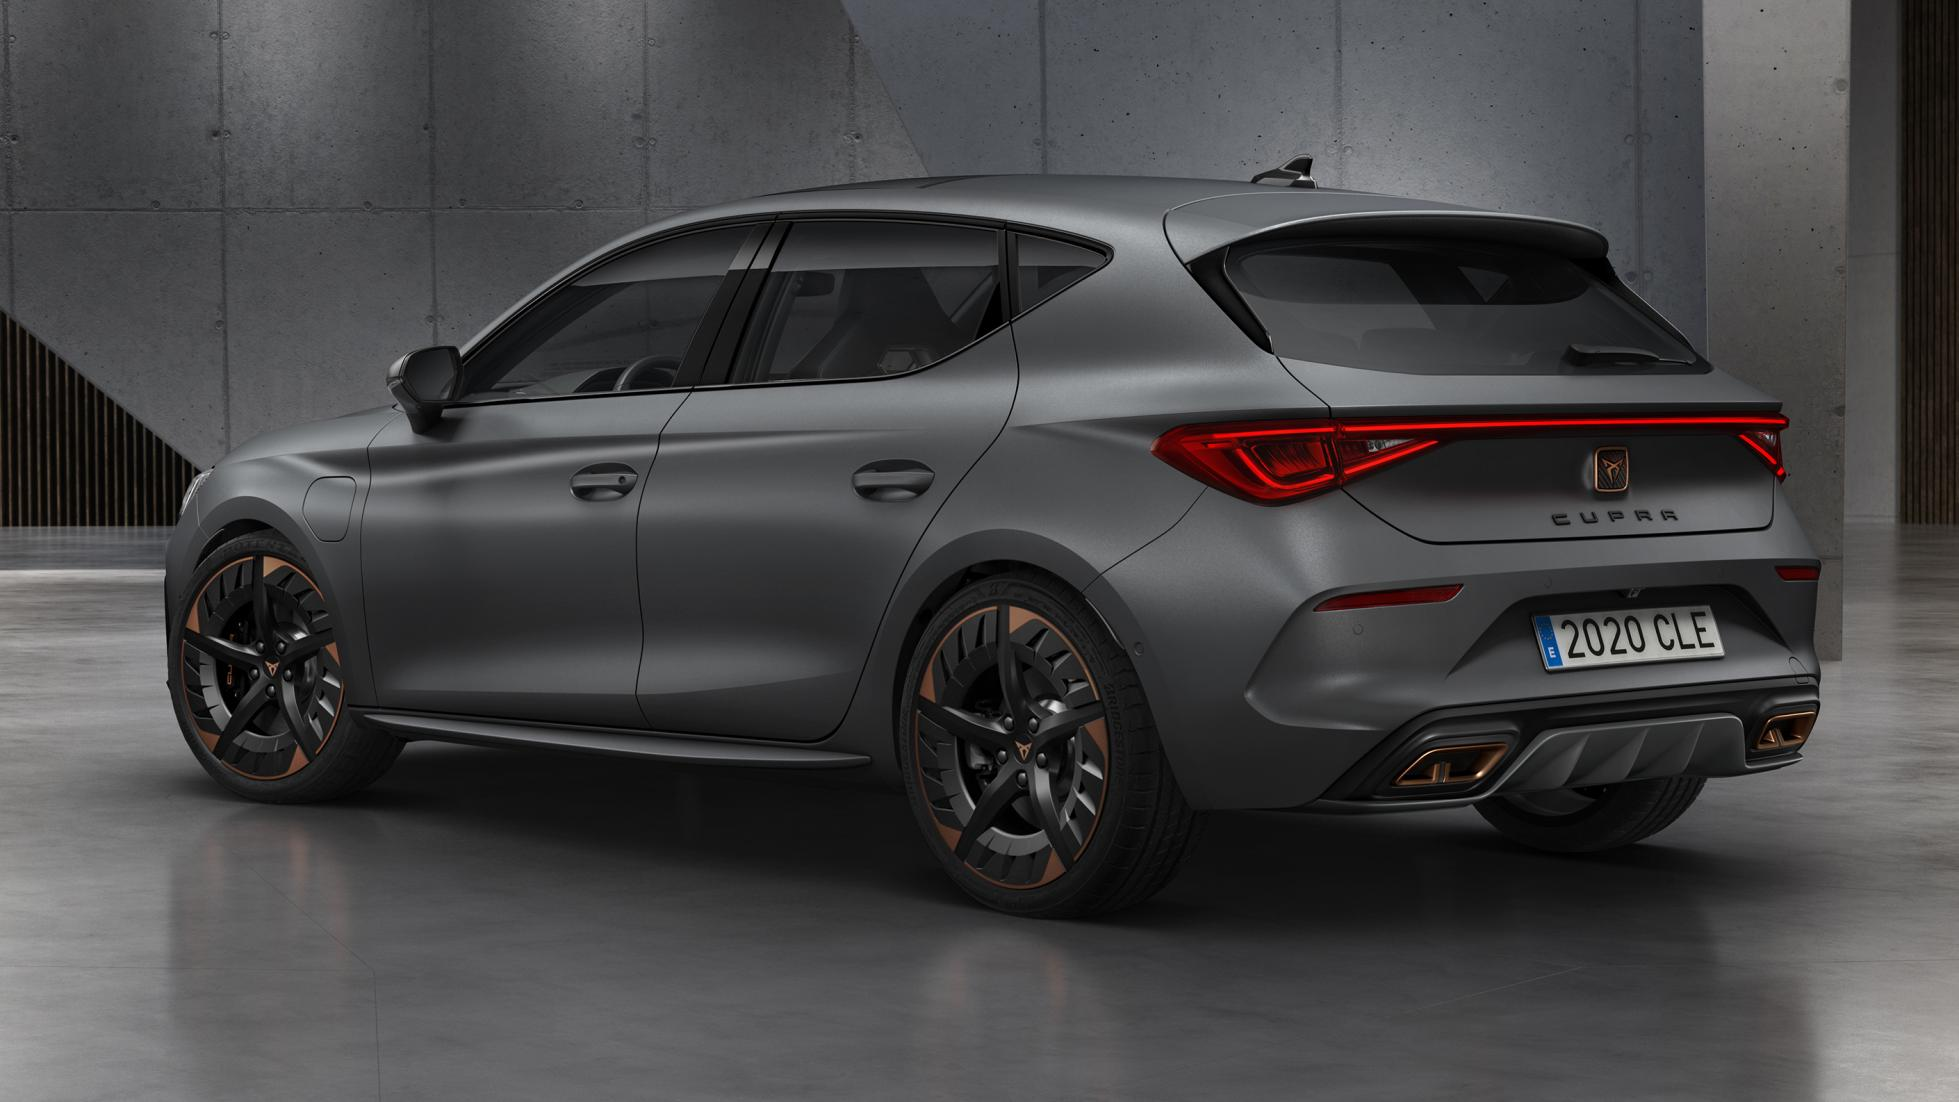 New Cupra Leon 2021 – First look